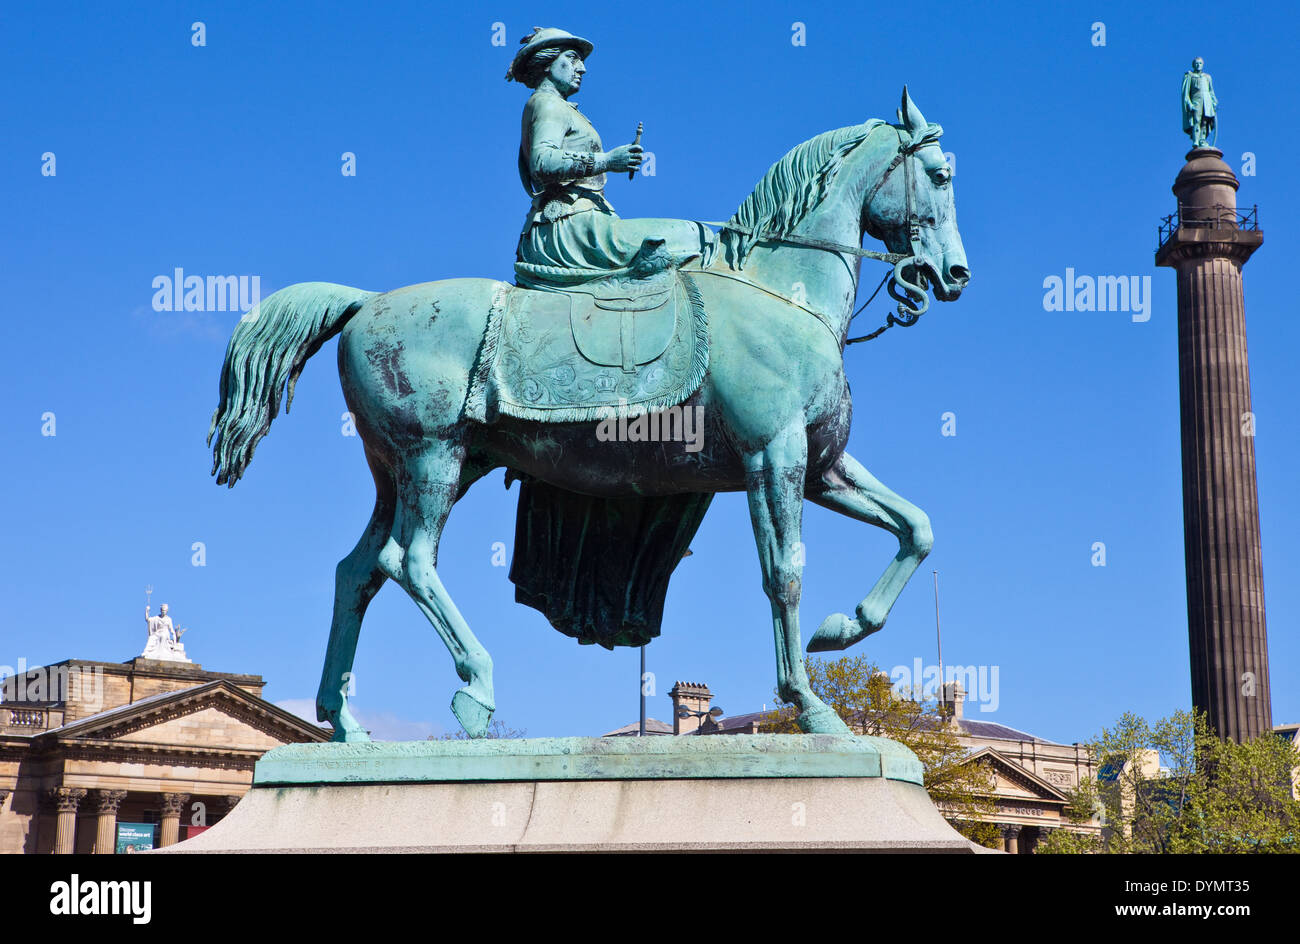 Statue of Queen Victoria with Wellington's Column, Walker Art Gallery and County Sessions House in the background, Liverpool. - Stock Image